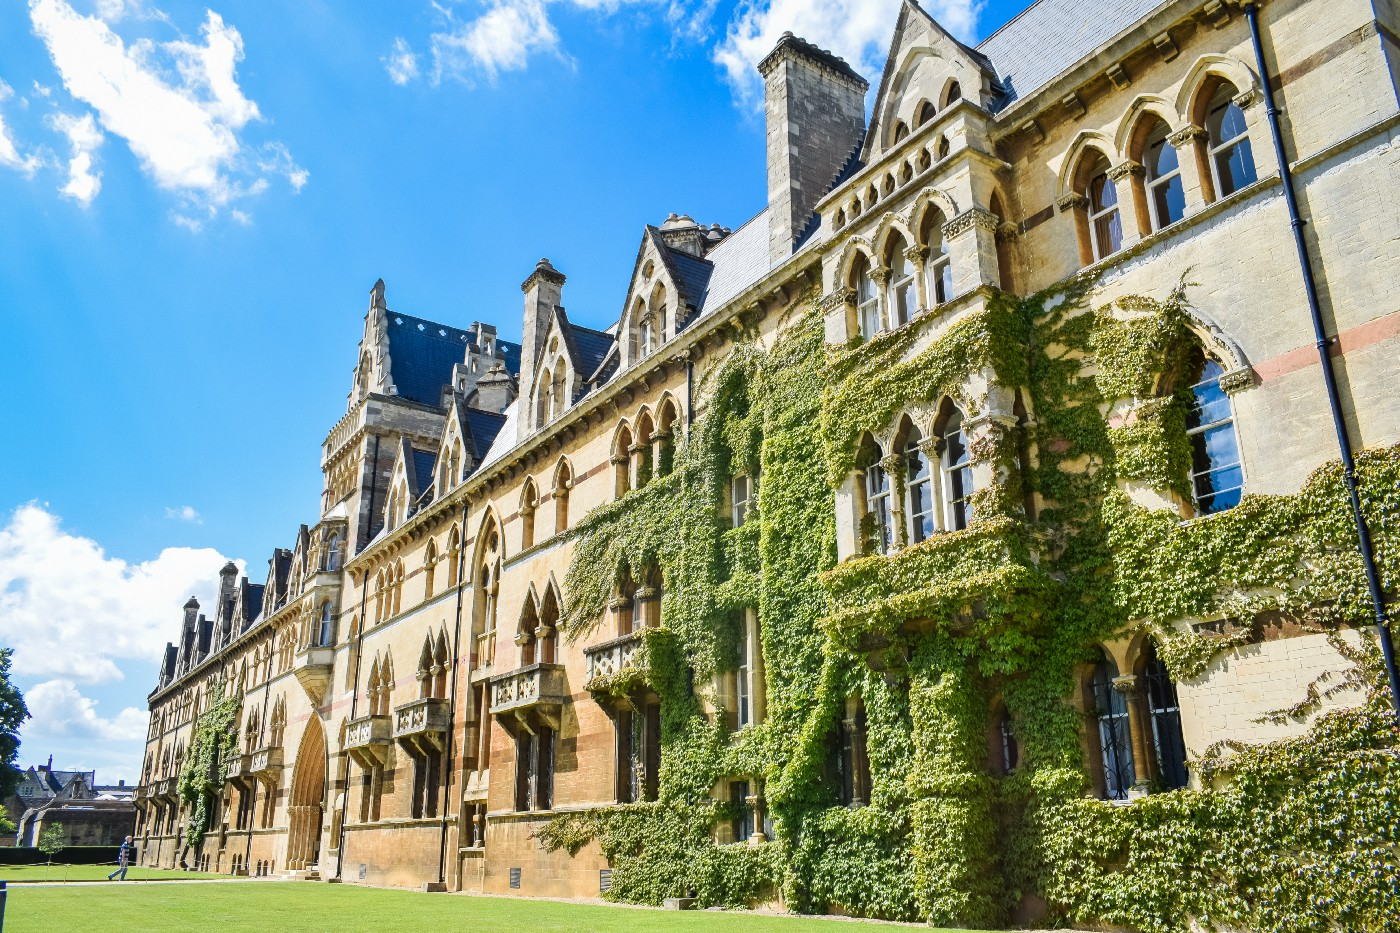 An old university building with ivy on the walls